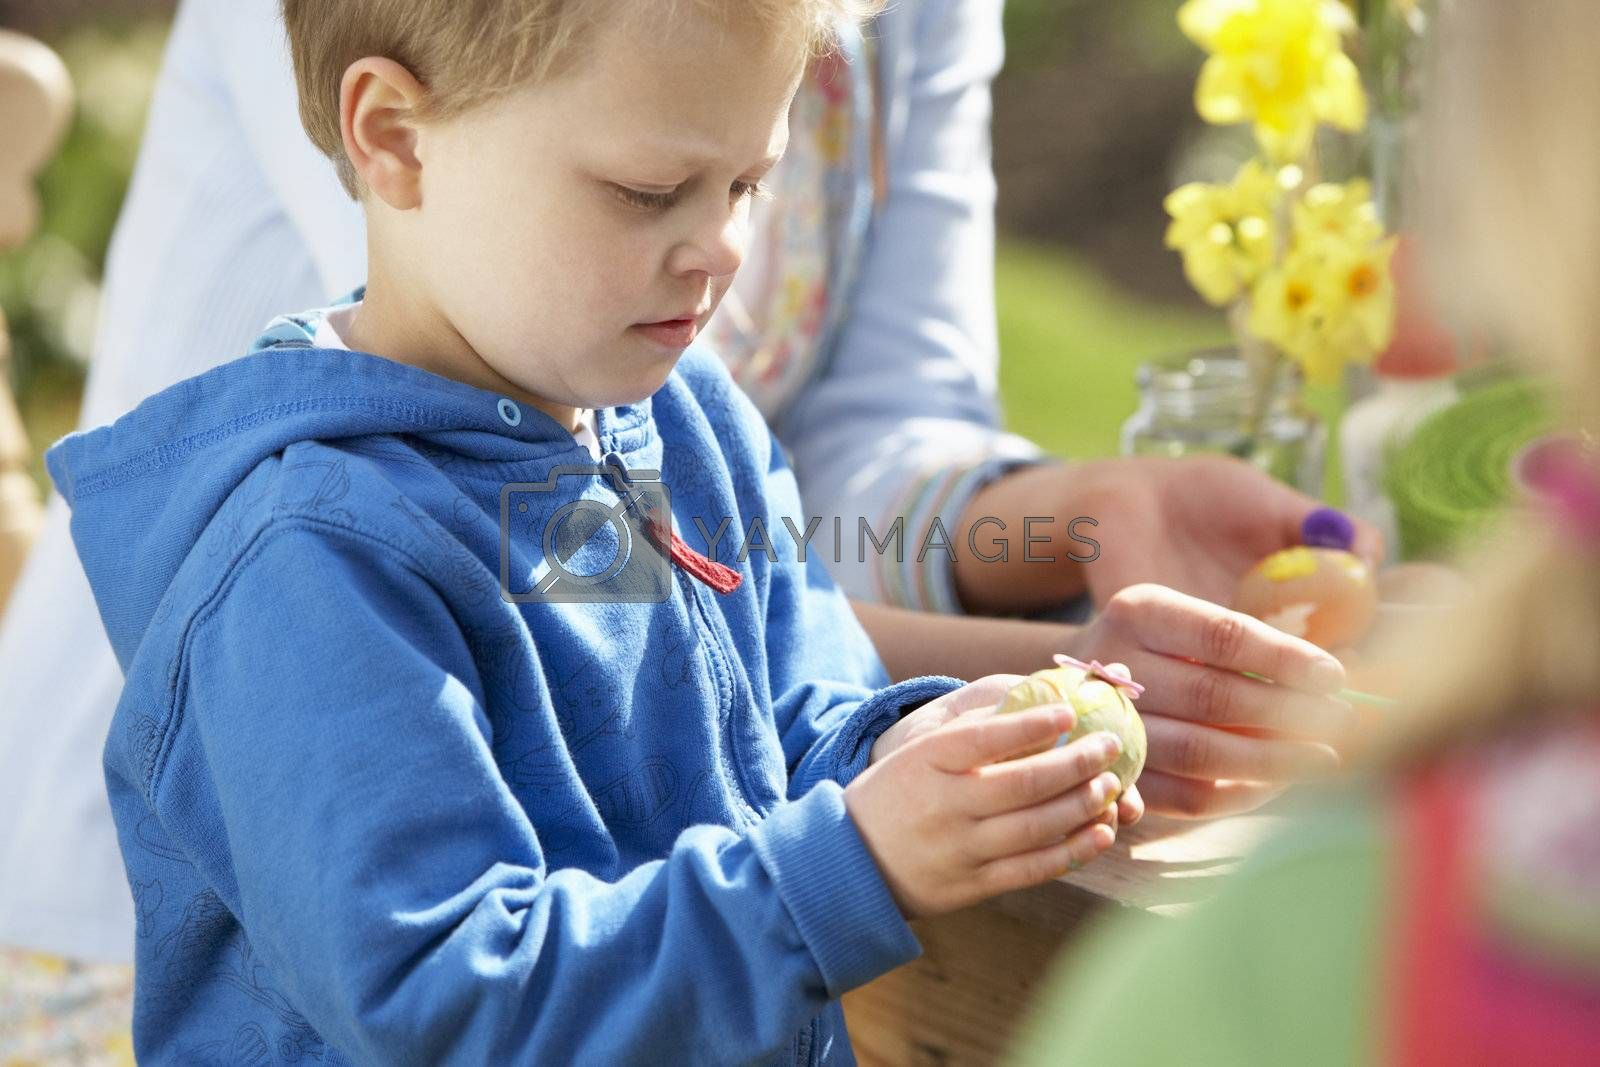 Mother And Children Decorating Easter Eggs On Table Outdoors by OMG Images